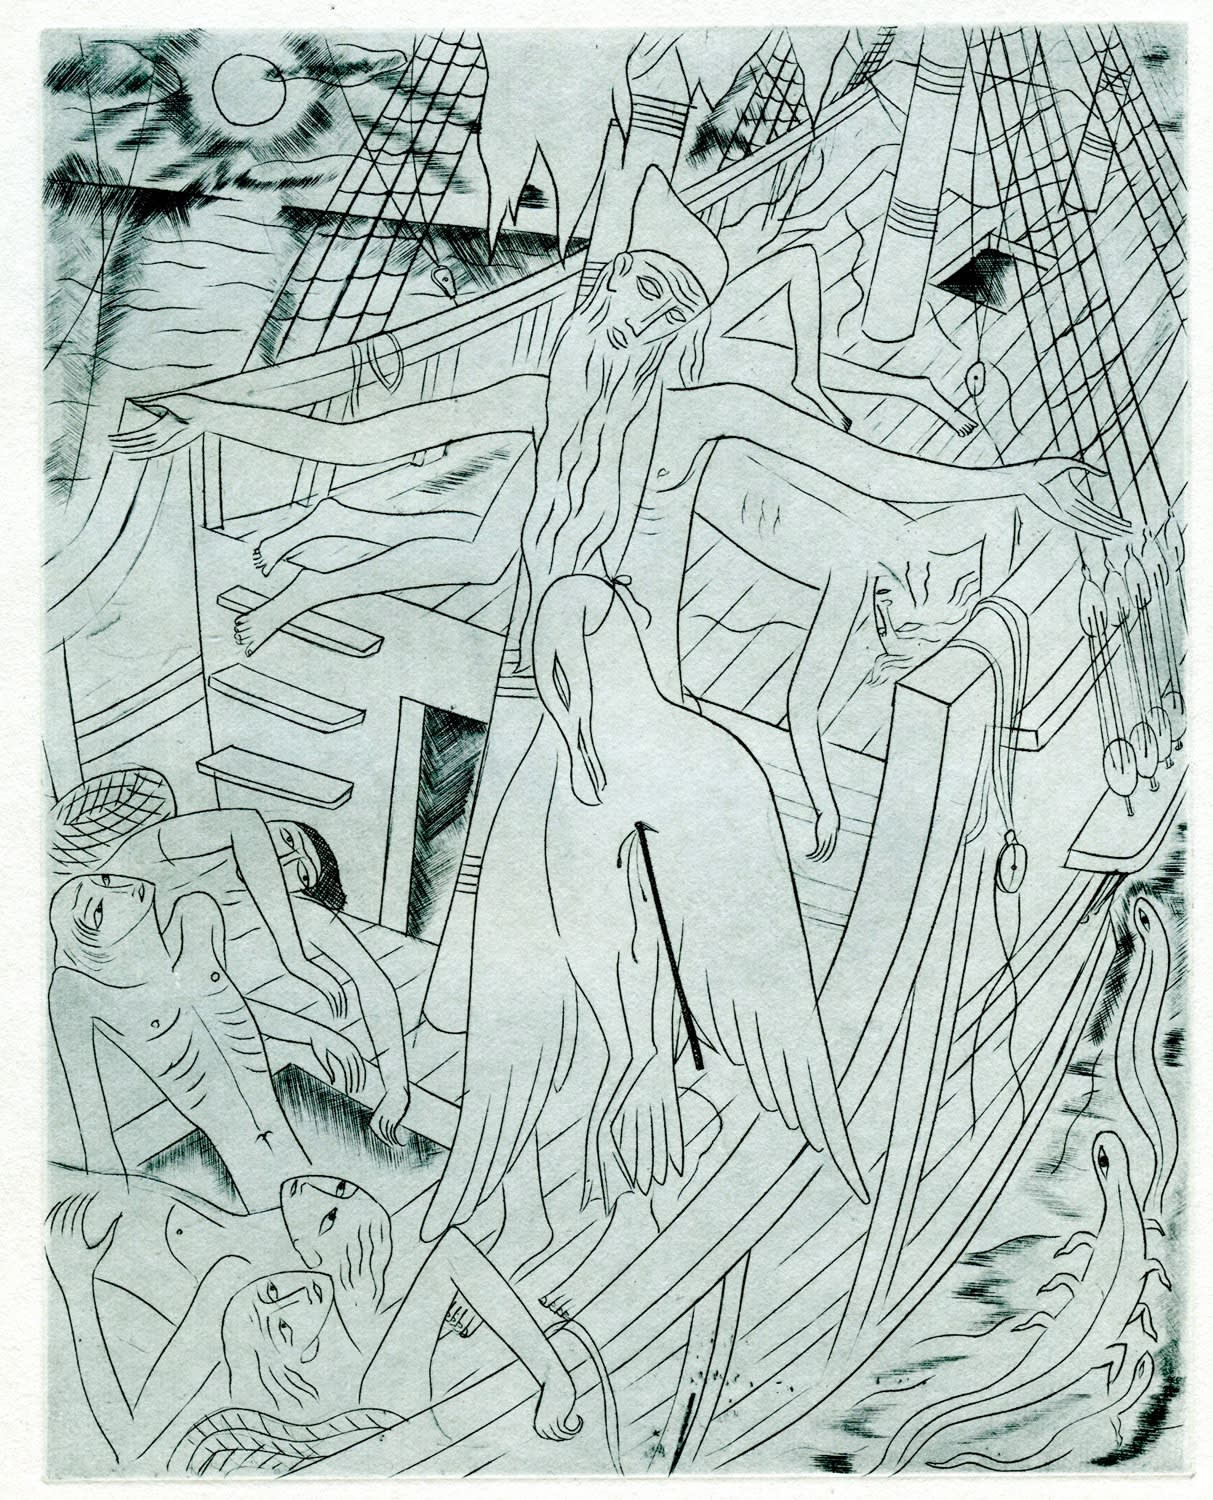 David Jones, The Curse from The Rime of the Ancient Mariner, 1928 Engraving with Drypoint